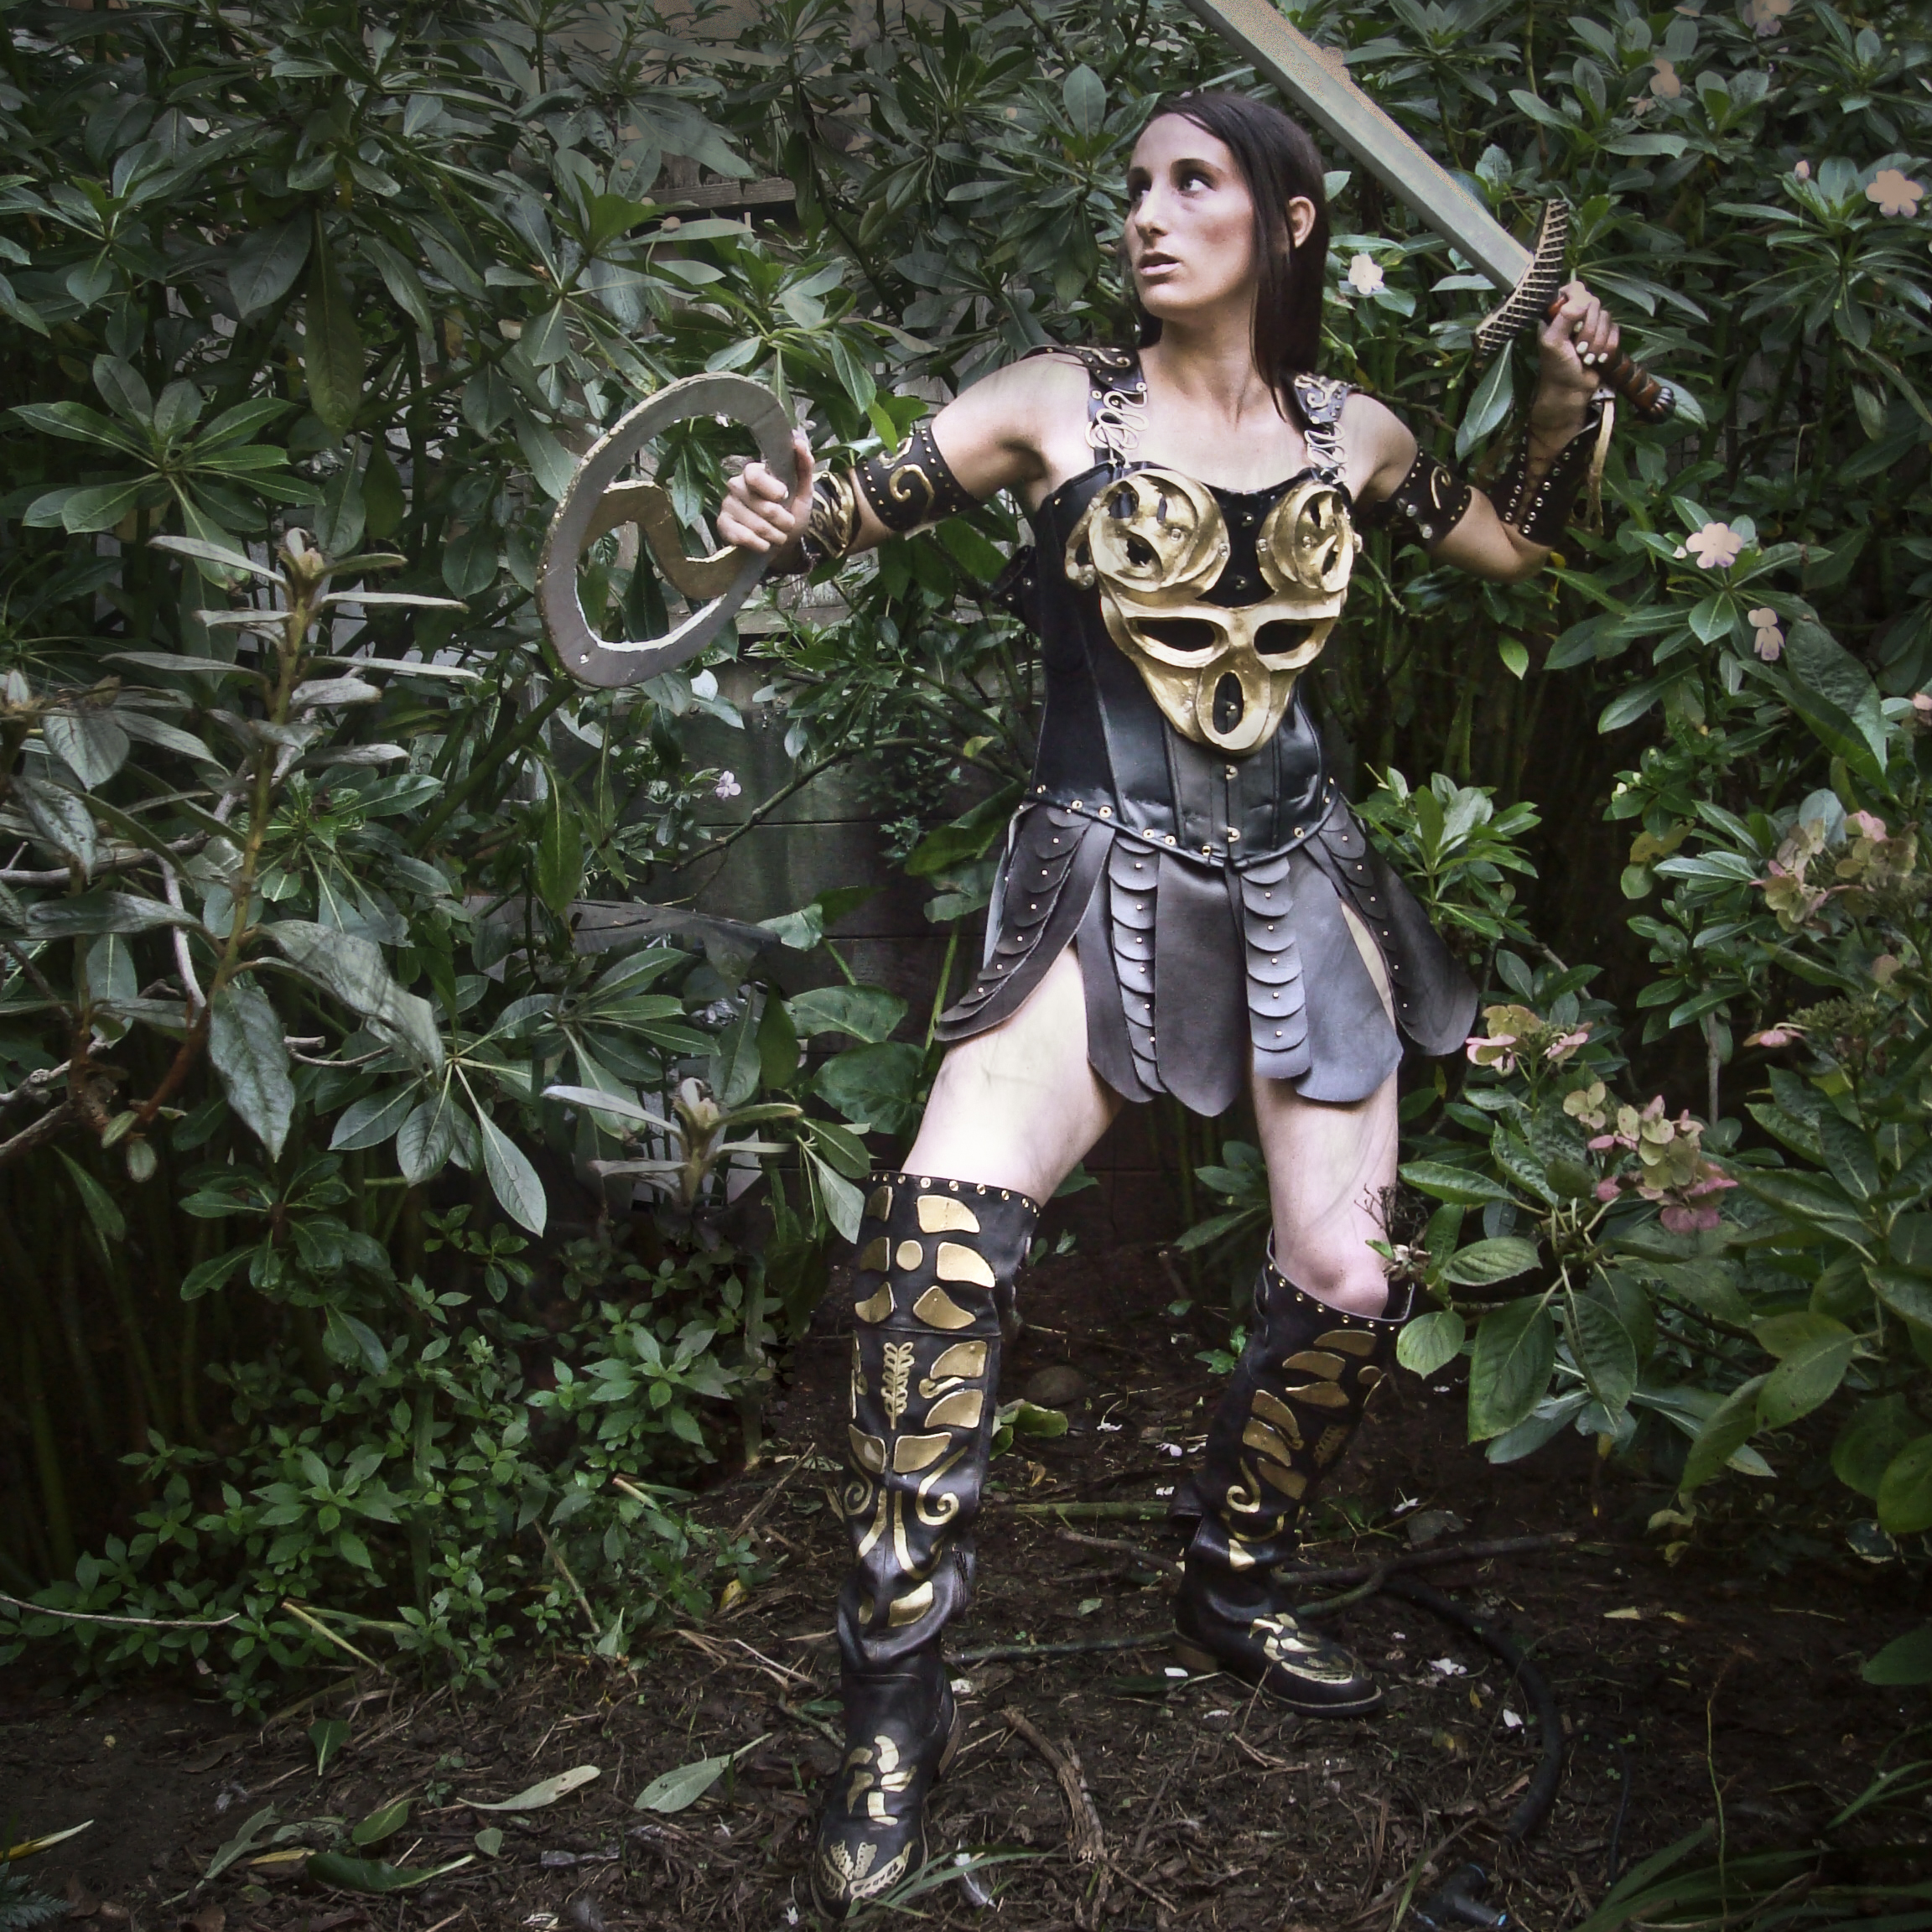 DIY Xena Warrior Princess Costume